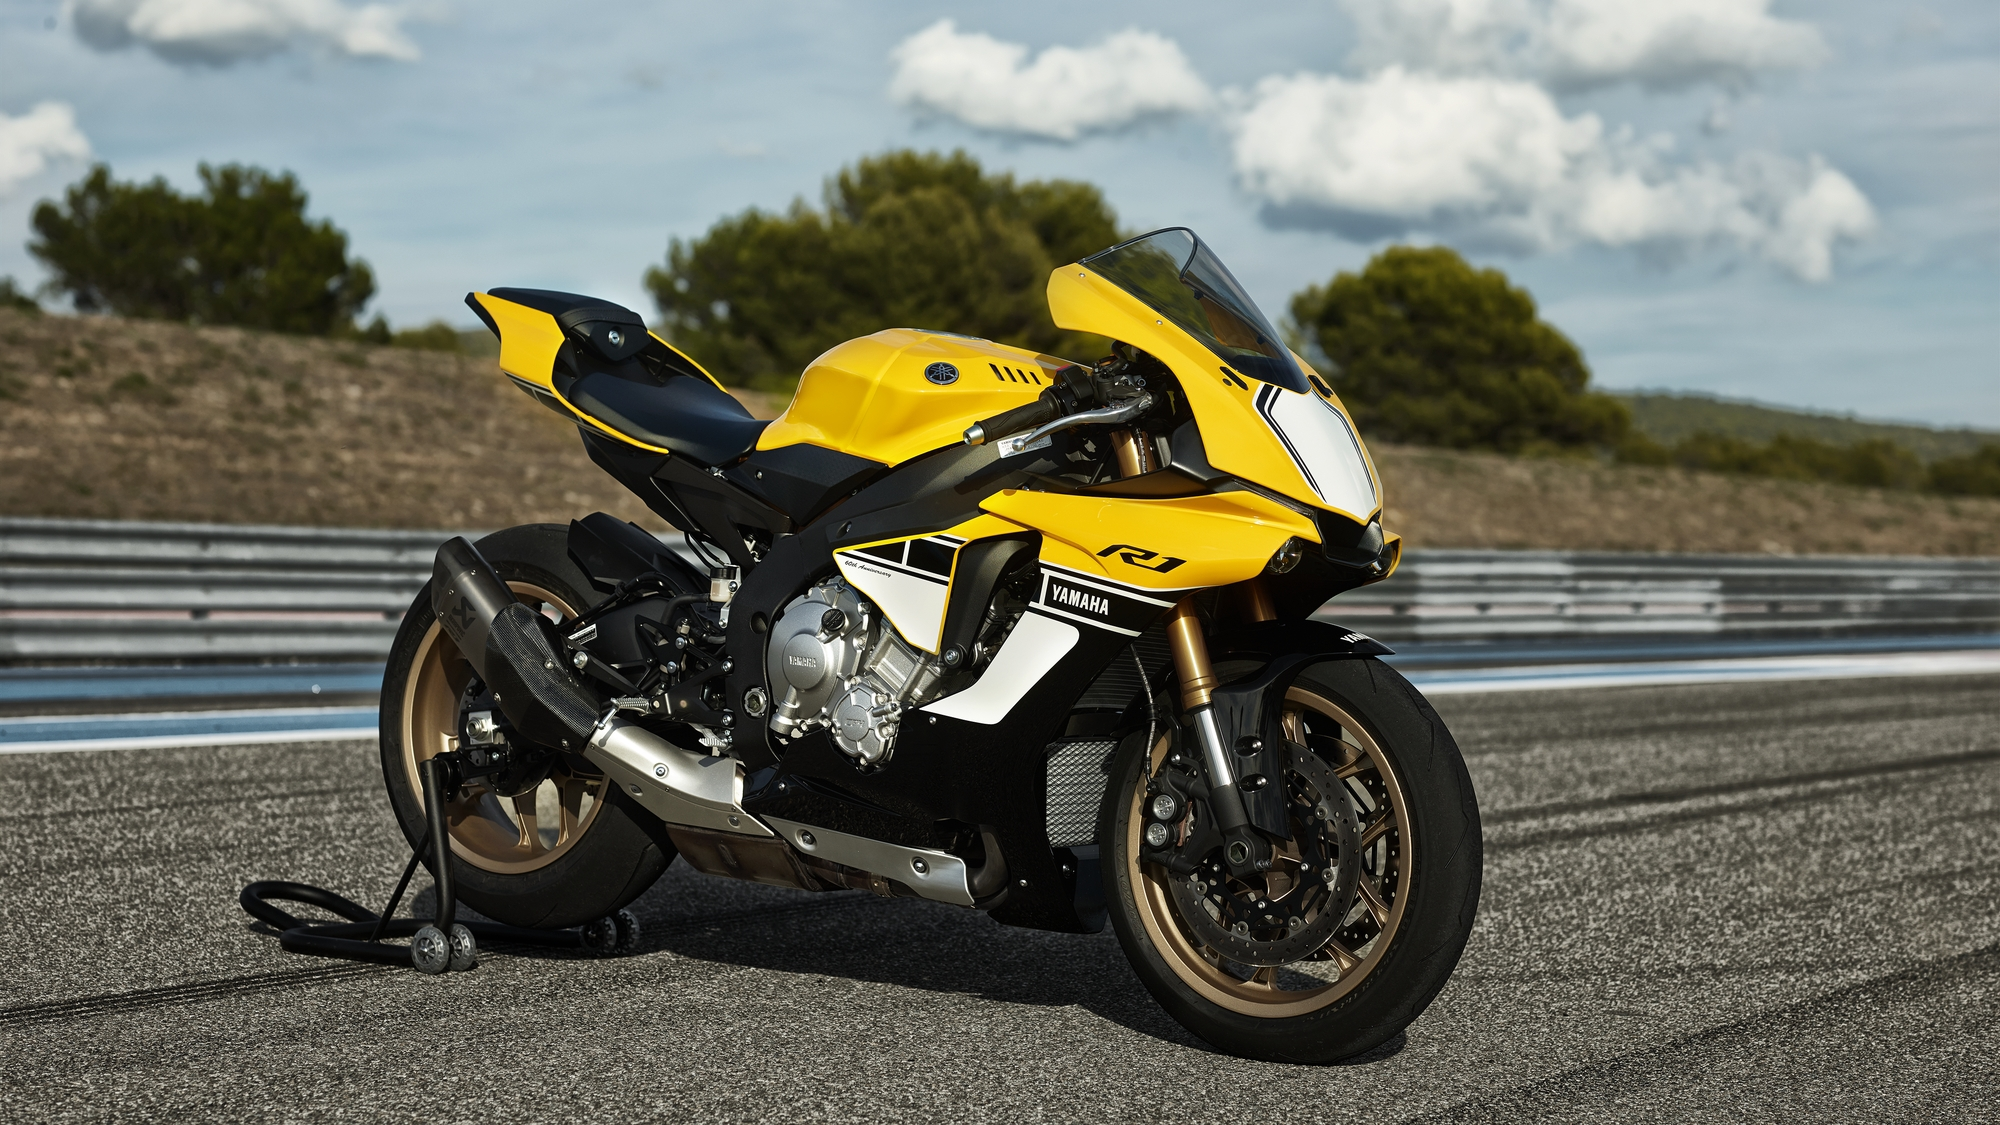 Yamaha YZF R1 60th Anniversary Edition Shows A Timeless Yellow Black